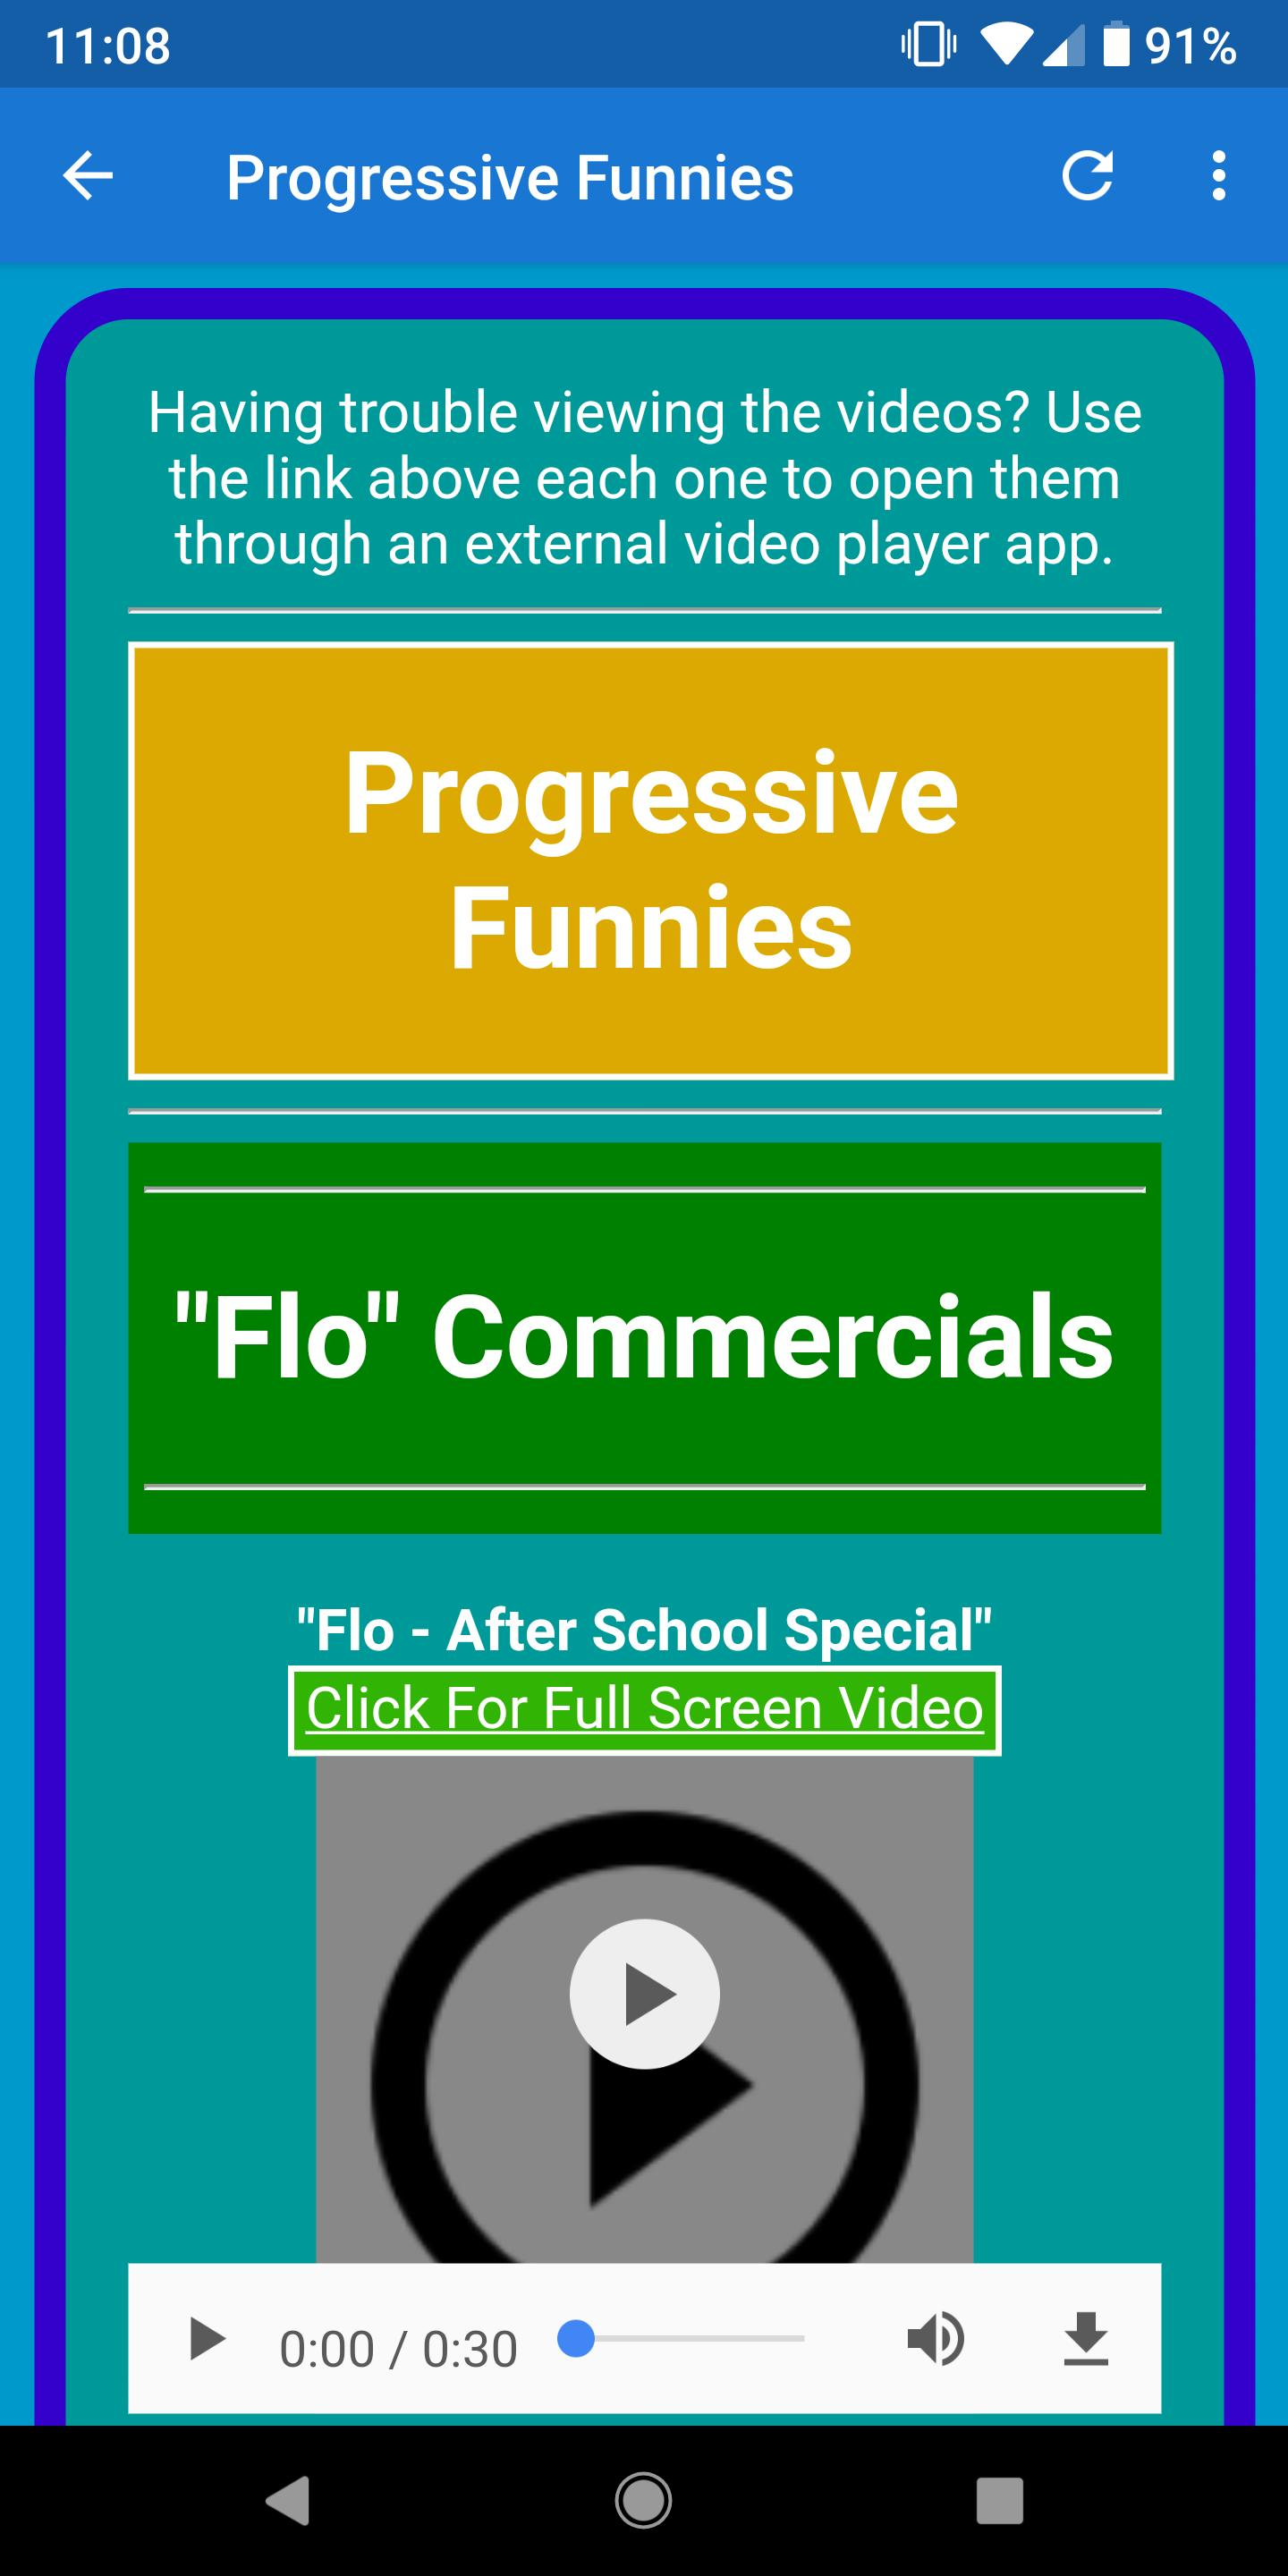 Insurance Funnies - Funny Commercials for Android - APK Download